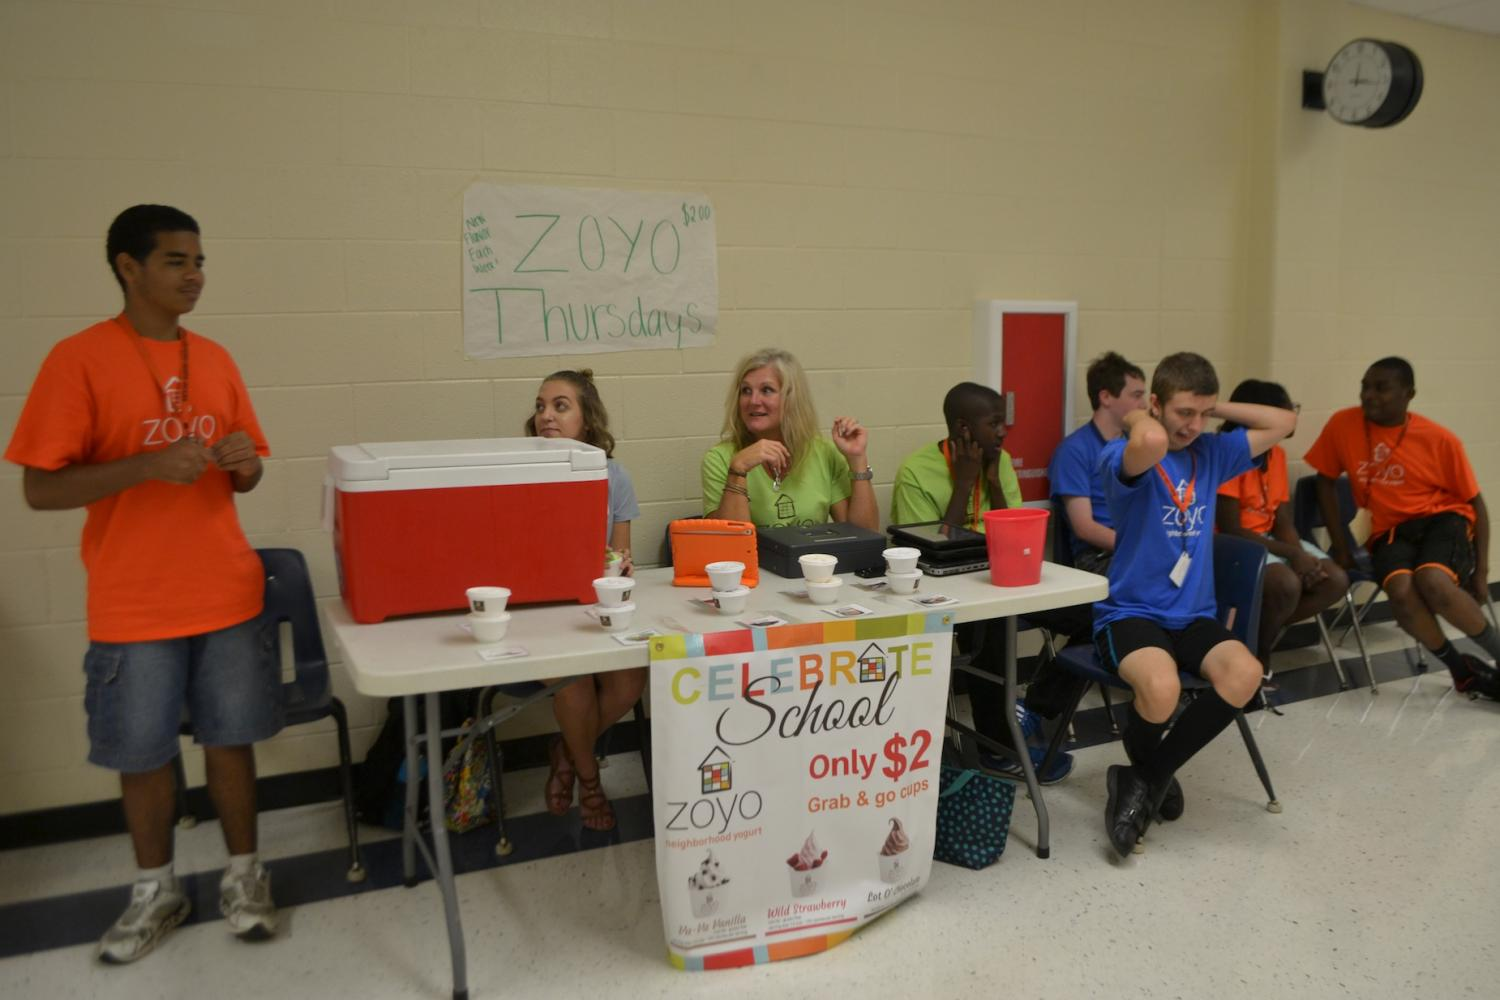 The NC special education program partners with Zoyo every Thursday to sell frozen yogurt in the freshman academy. There are five different flavors to choose from, and every week the organization offers a new flavor. At $2 per cup, the table raises money for the special education program at NC.